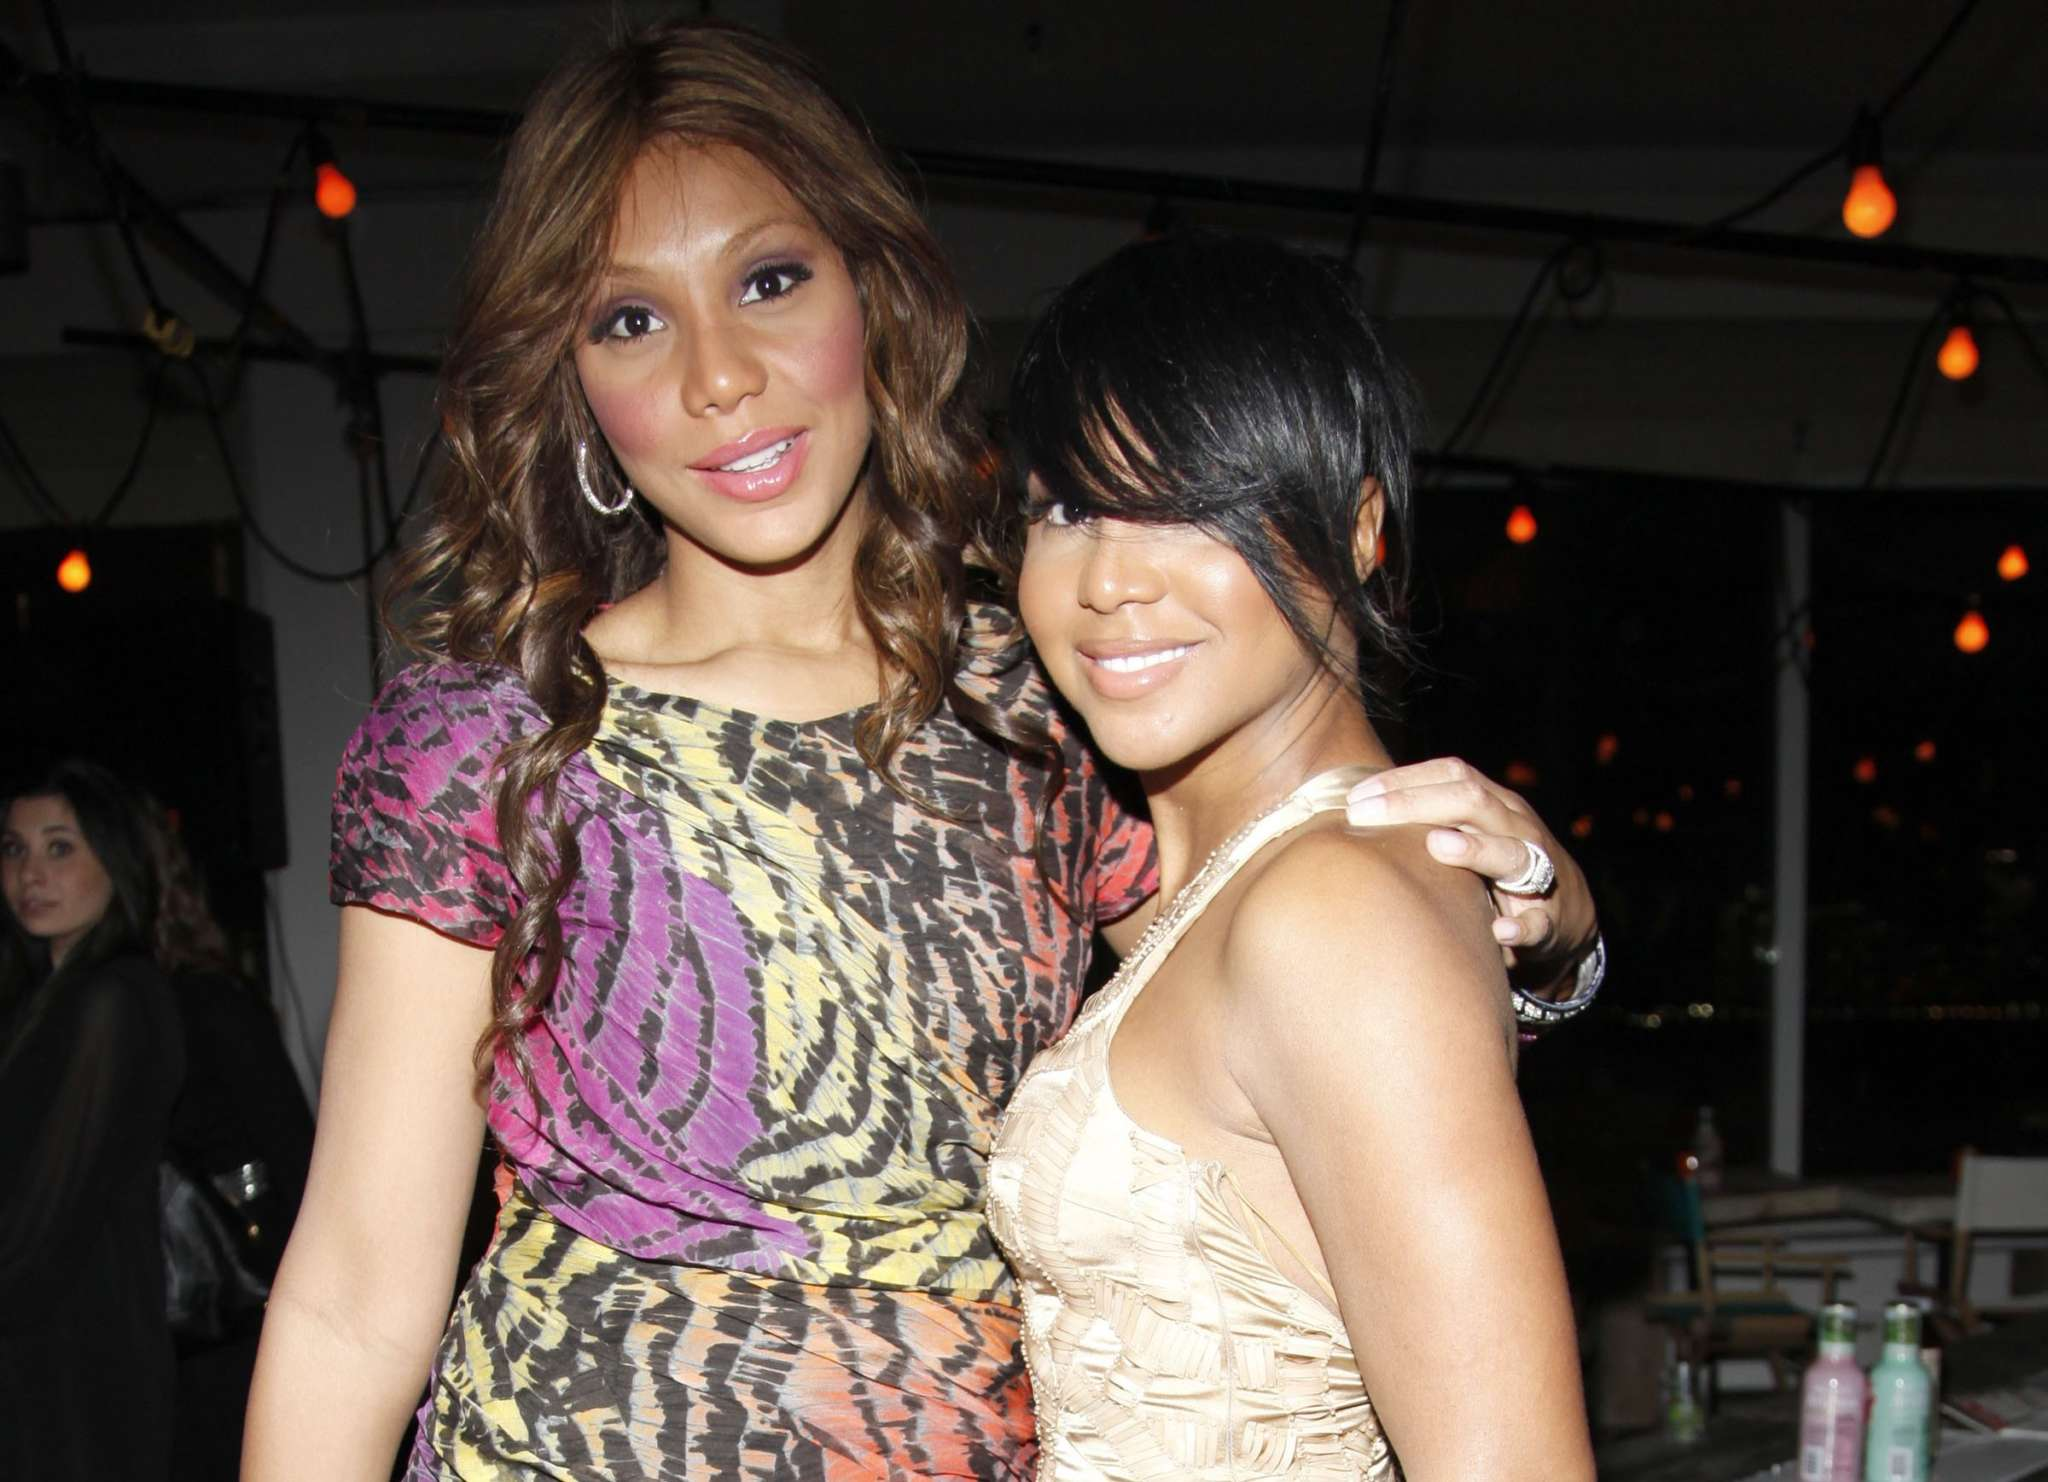 Tamar Braxton Celebrates The Birthday Of Her Sister, Toni Braxton - See Her Video